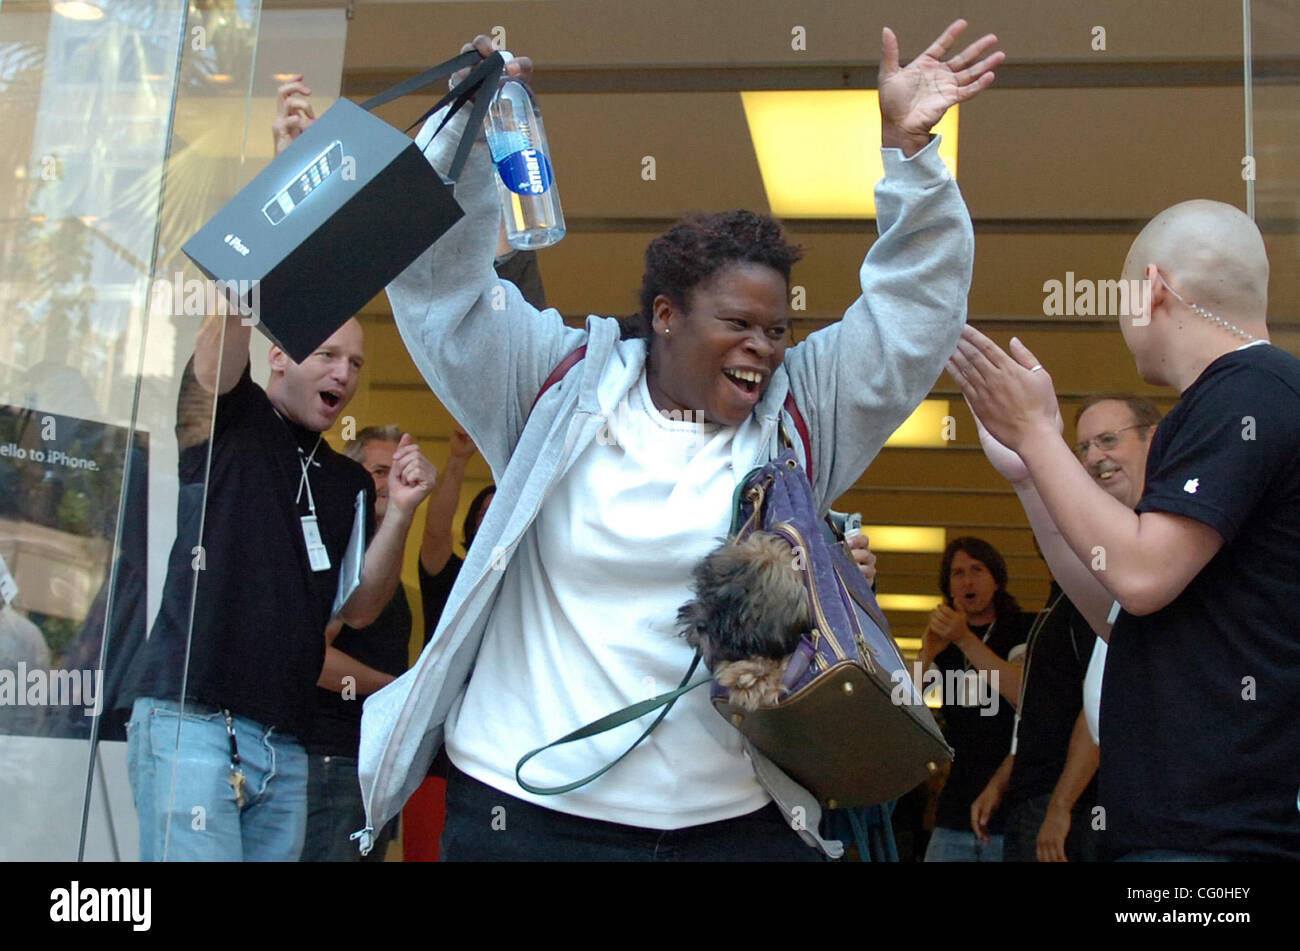 Tamy Patterson of Richmond celebrates after buying an iPhone at the Apple Store in Emeryville on Friday June 29, - Stock Image